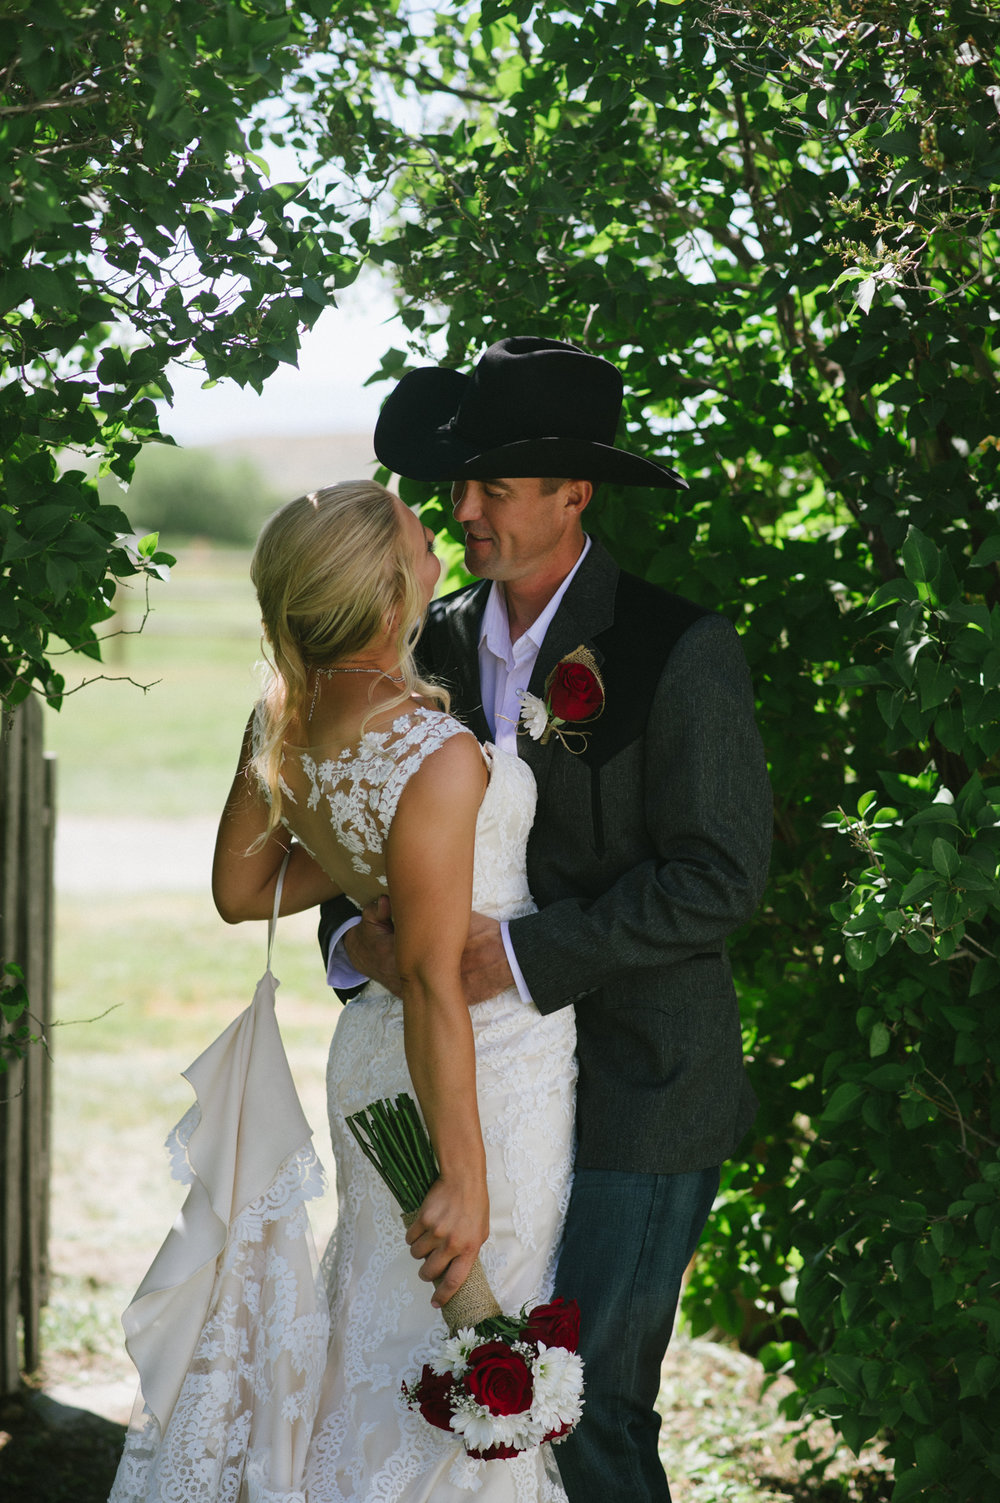 Erica Lind + Jeff Heim Wedding_Rustic Wedding_Montana Wedding_Kelsey Lane Photography-3860-2.jpg